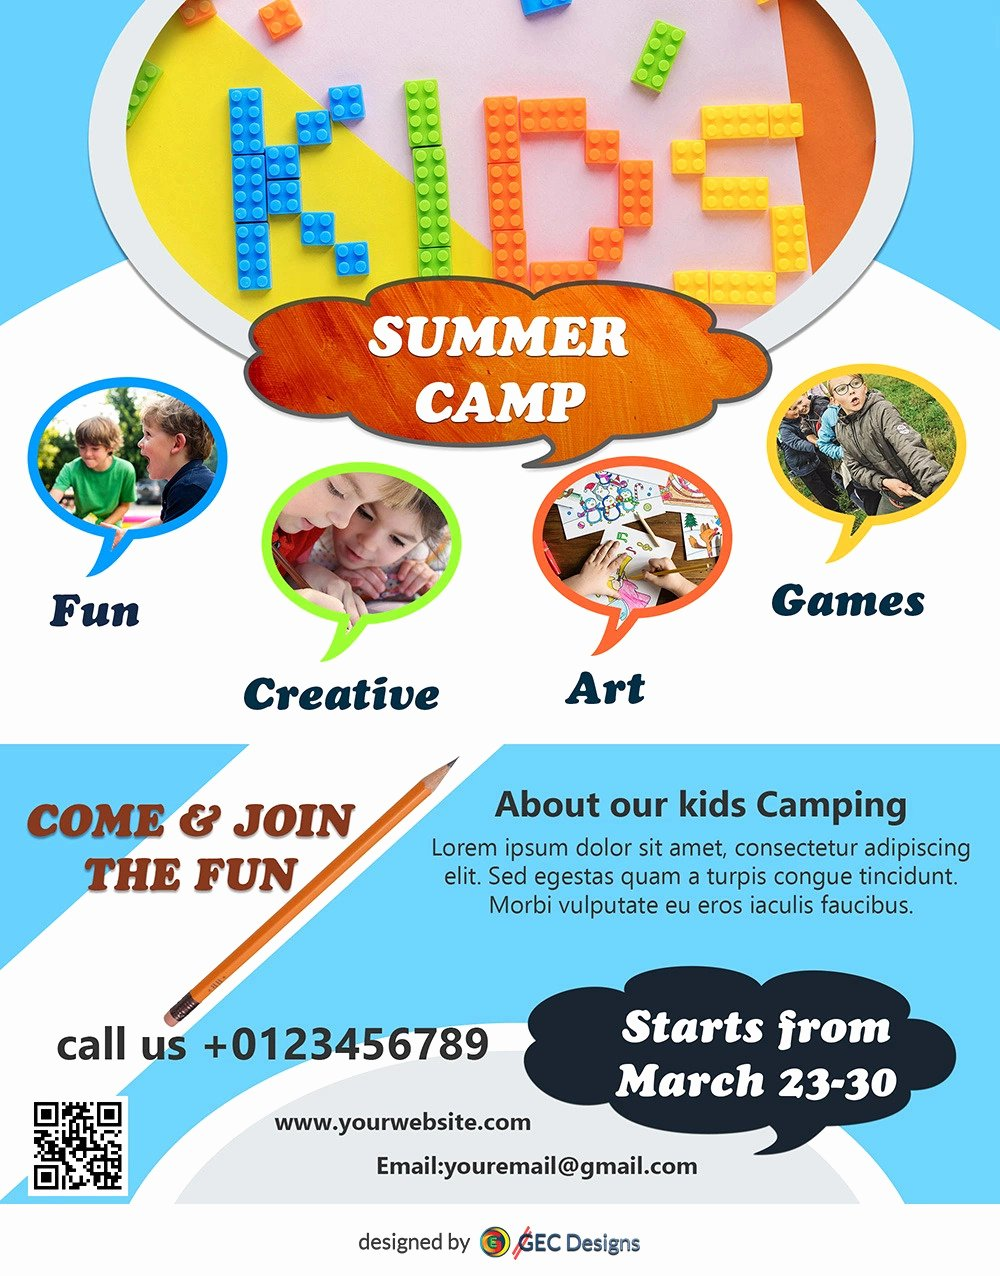 Summer Camp Flyer Template Lovely Download Free Kids Summer Camp Flyer Design Templates